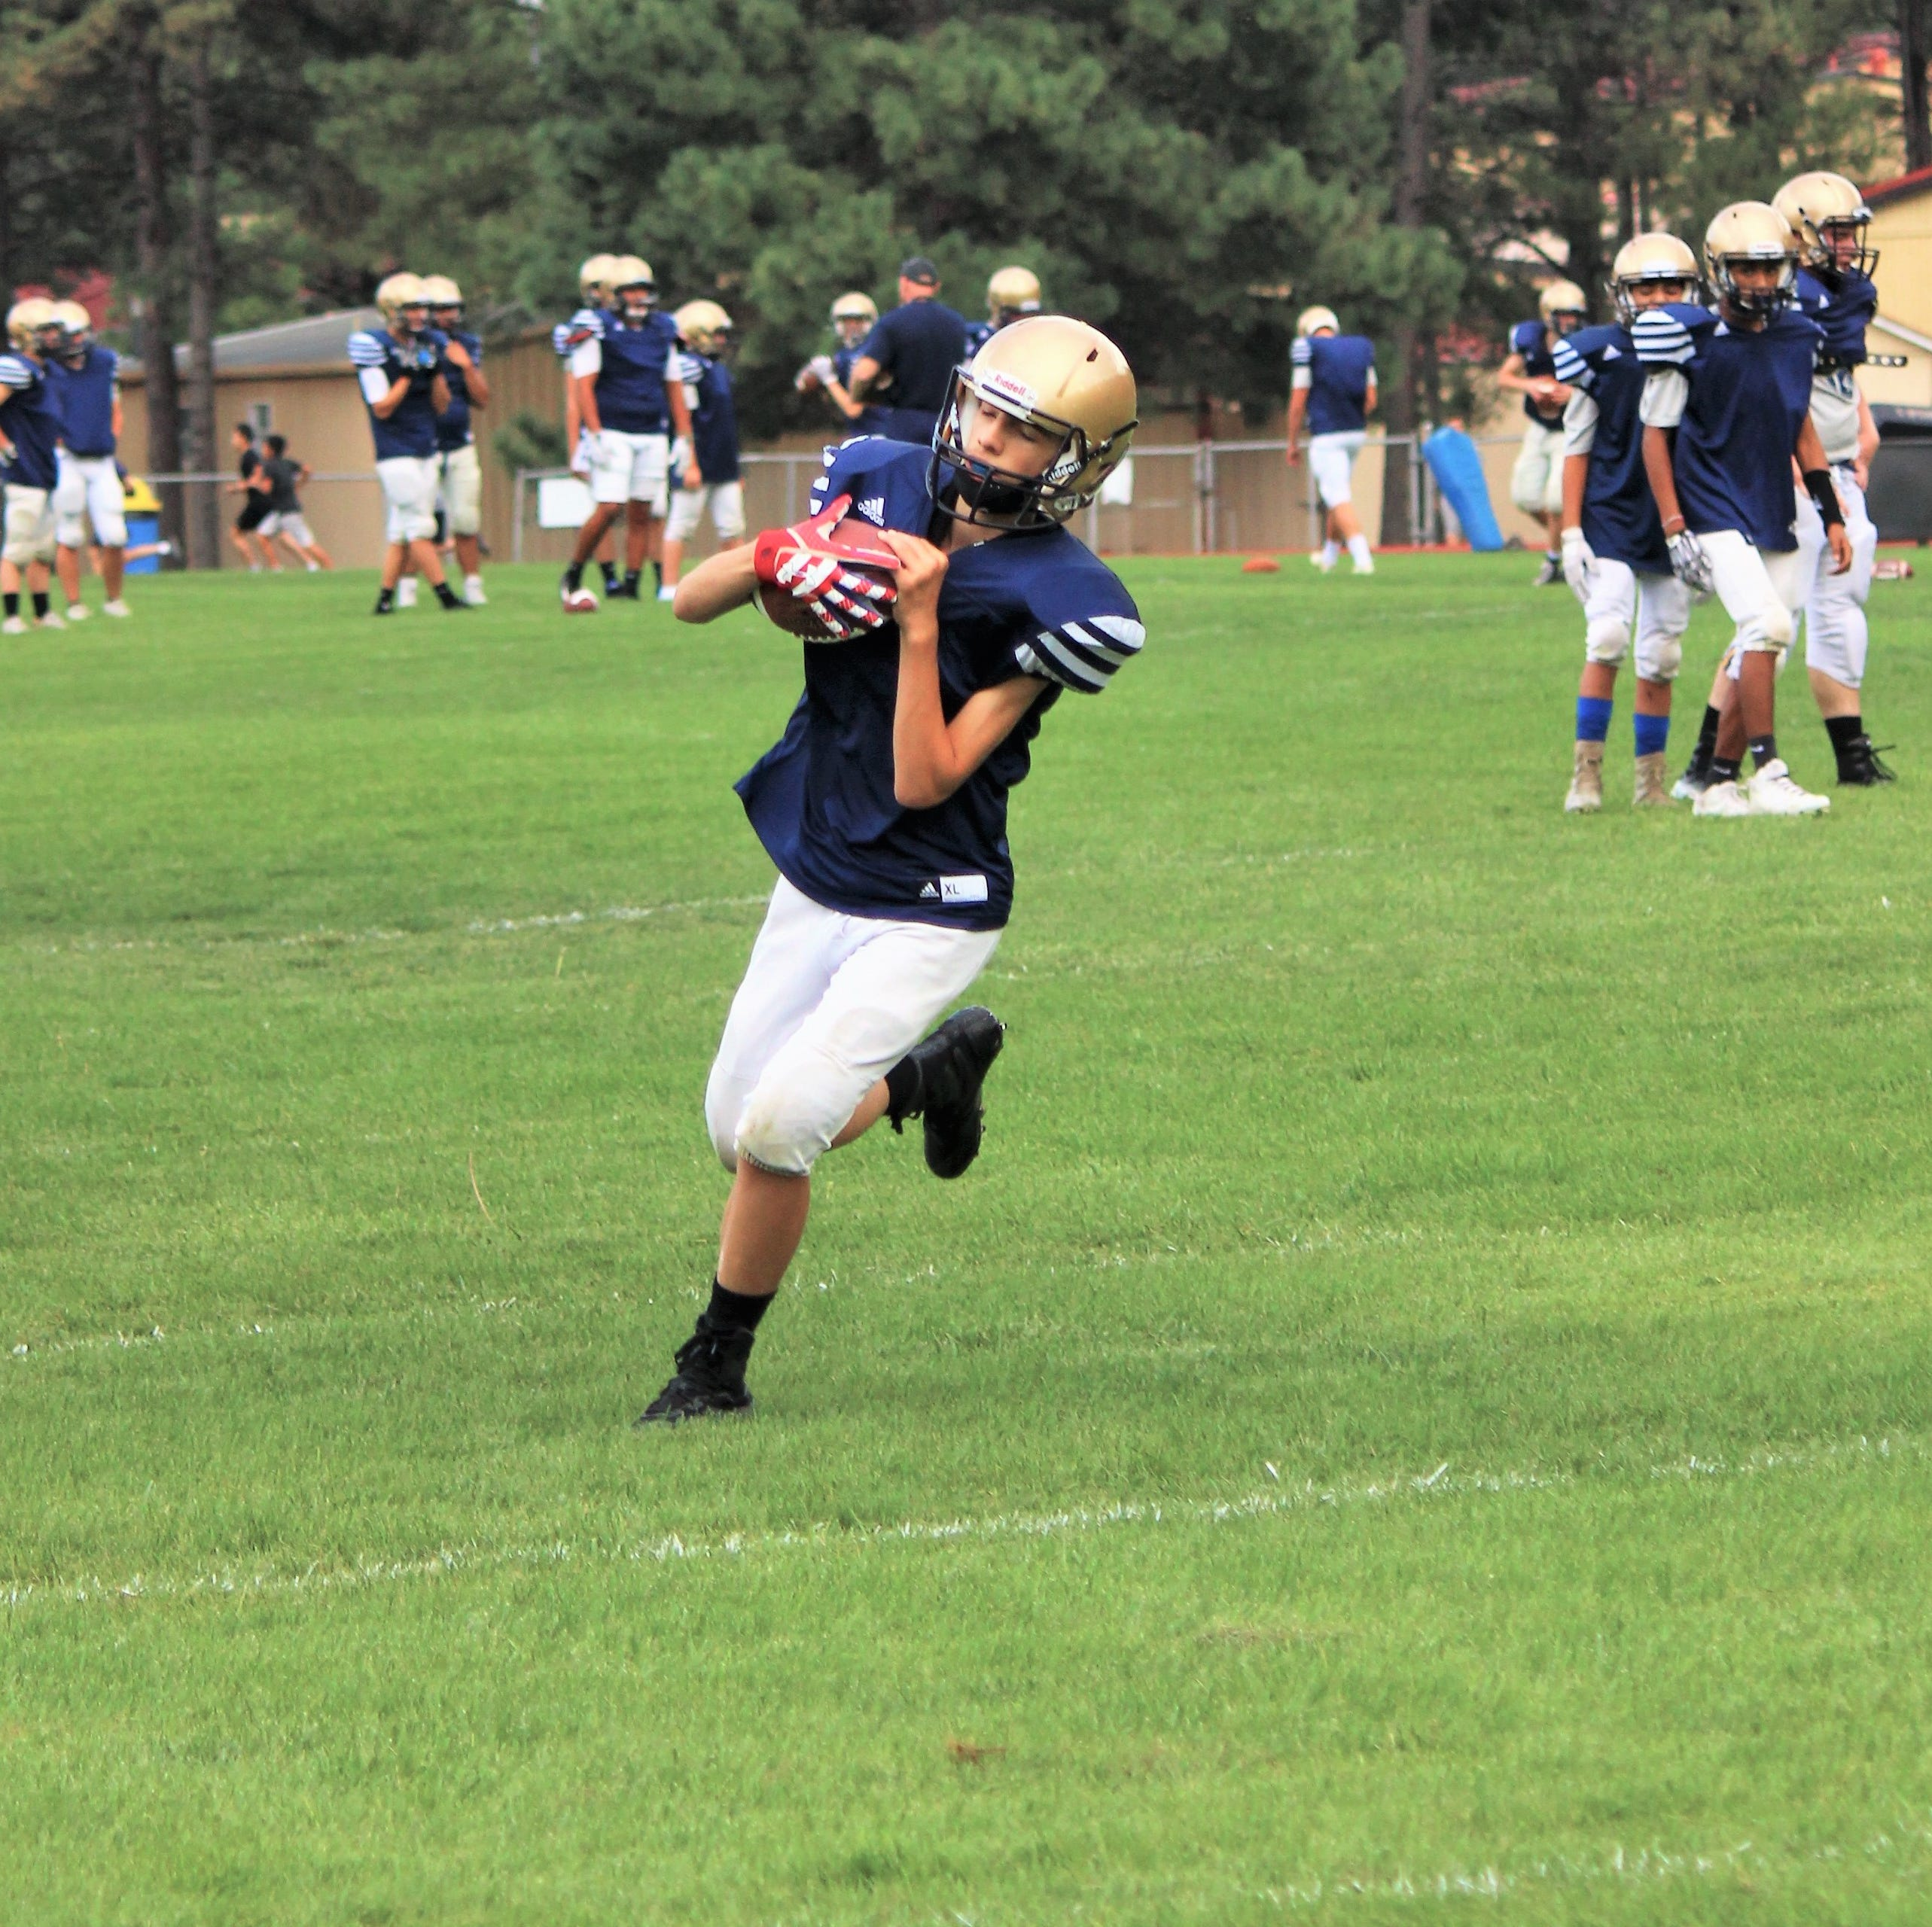 Ruidoso Warriors gearing up for 2018 season